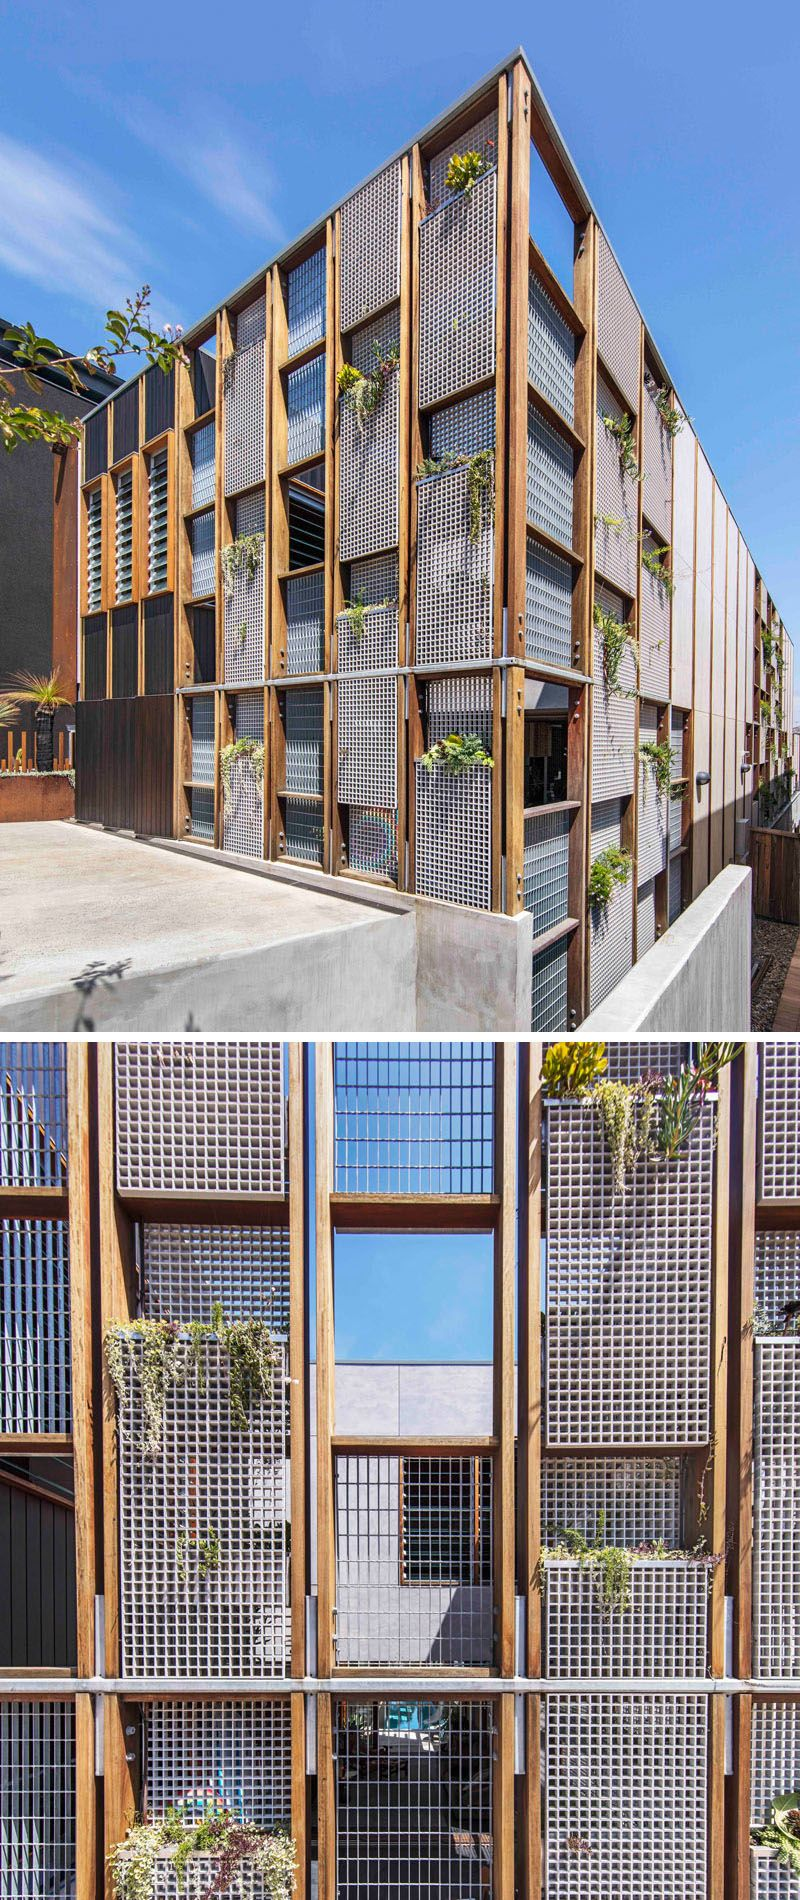 The Facade Of This Modern House Is Made Up Of A Wood Grid